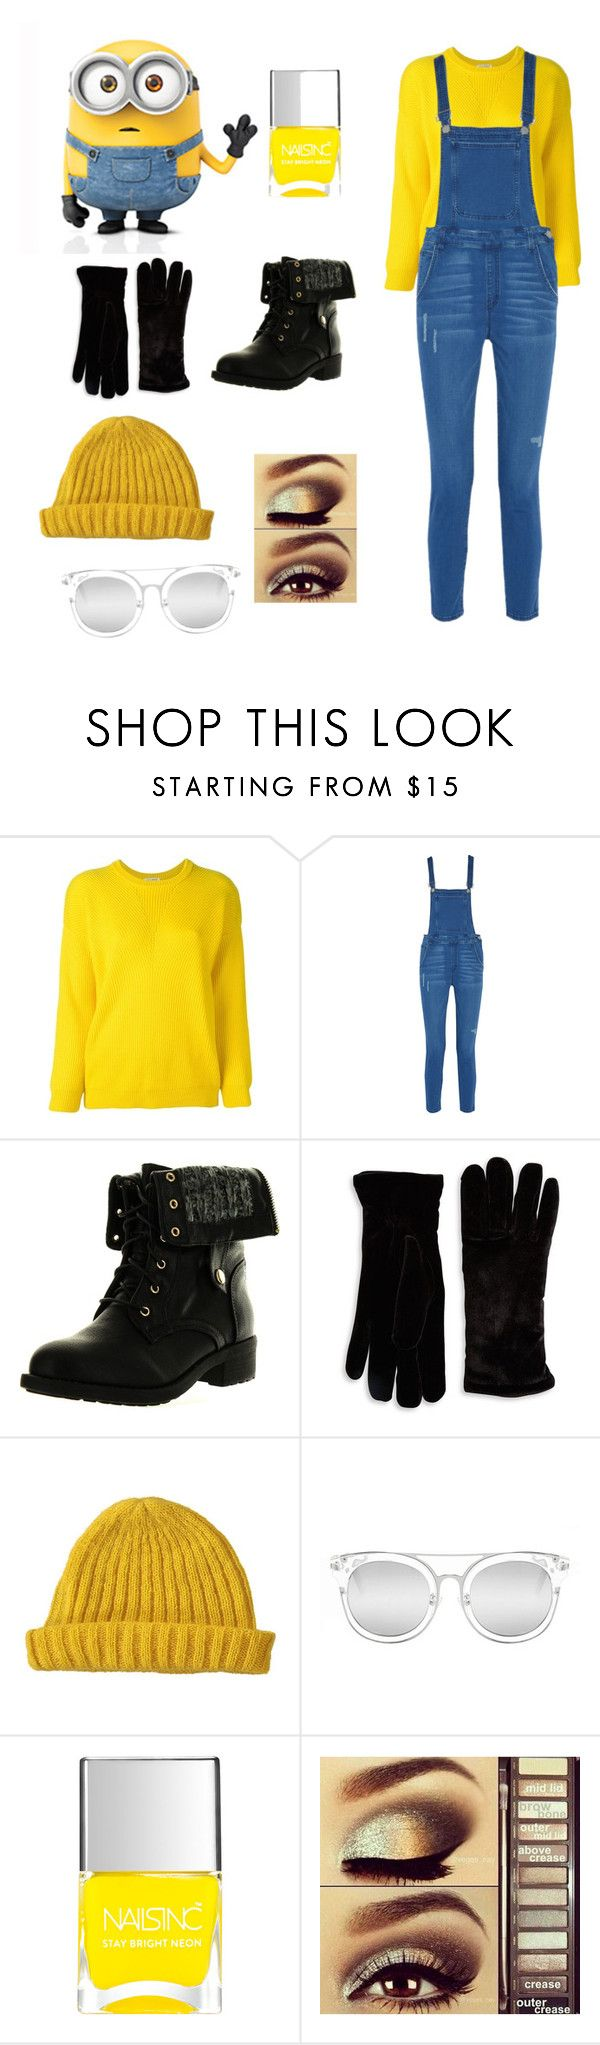 """Minion costume"" by fashion-lover63 ❤ liked on Polyvore featuring Roseanna, Rebecca Minkoff, Refresh, Cejon, Lowie, Quay, Nails Inc. and Urban Decay"